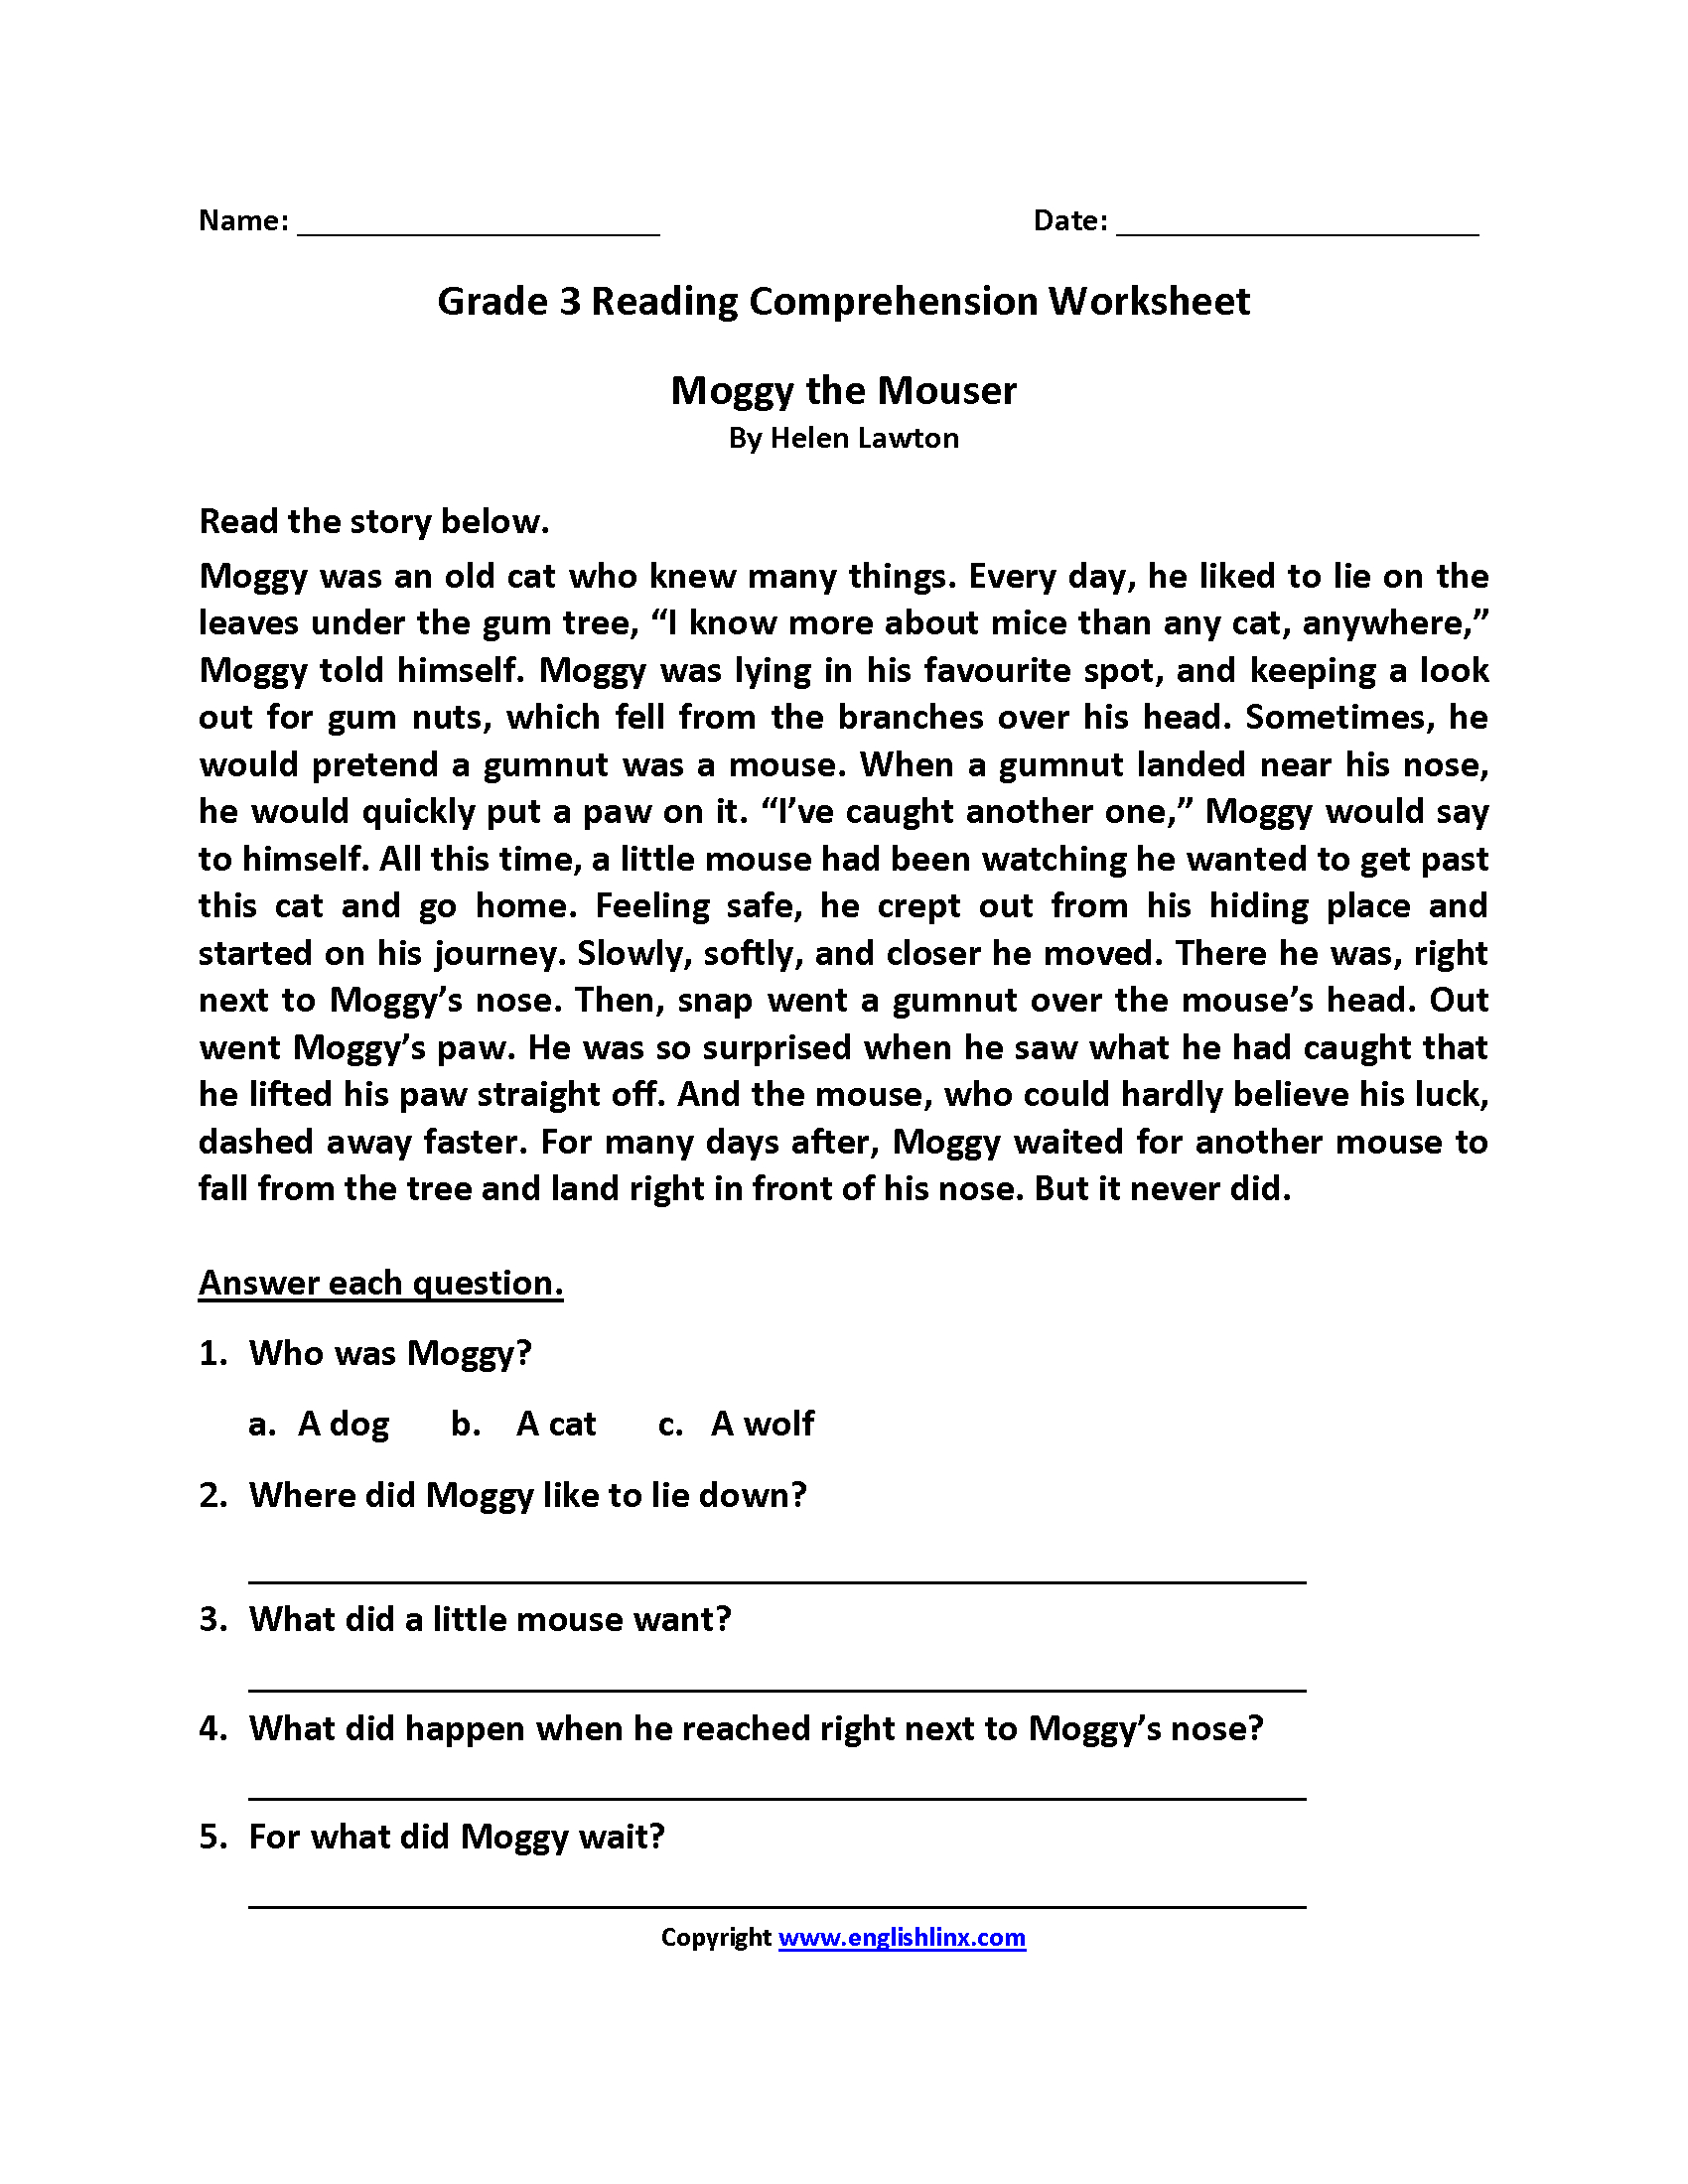 3Rd Grade Reading Comprehension Worksheets Pdf | db-excel.com